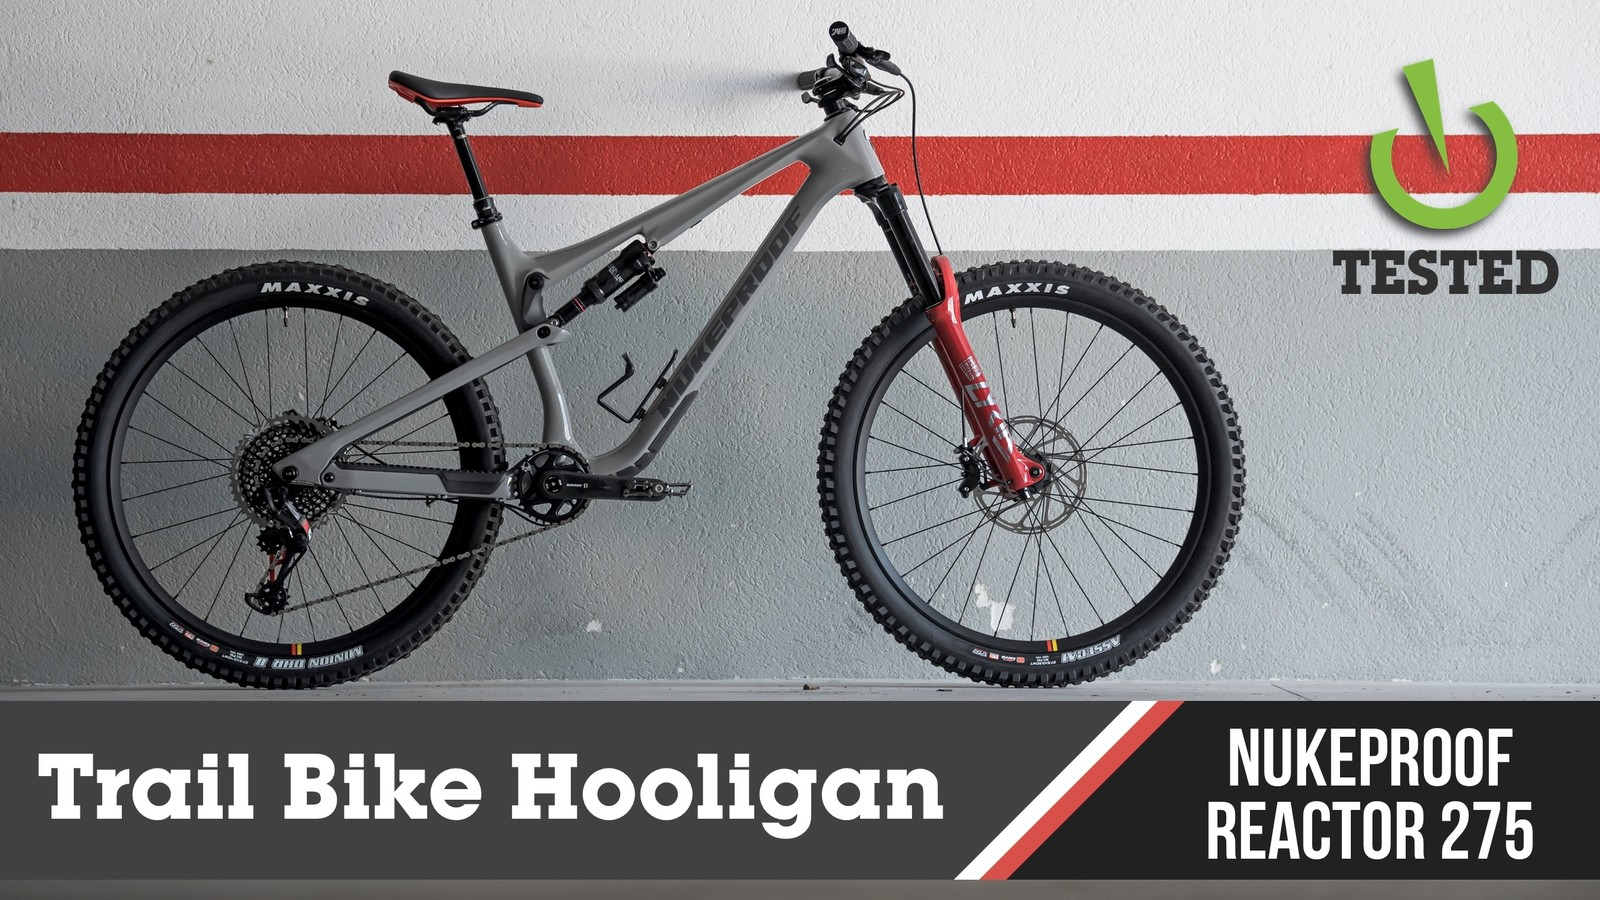 Trail Bike Hooligan: Nukeproof Reactor 275 RS